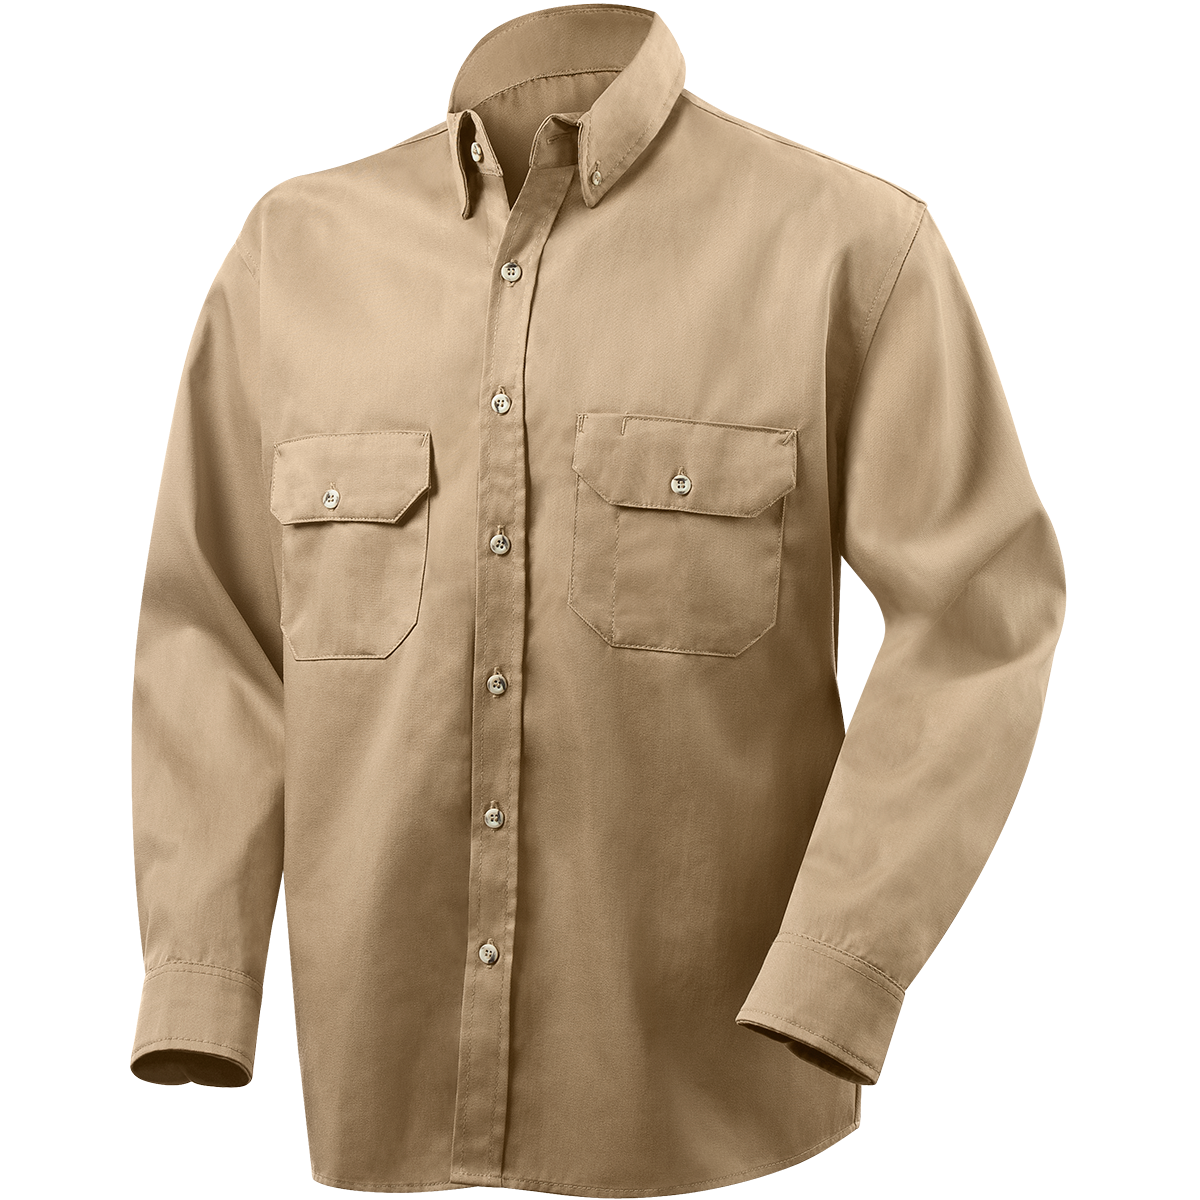 c2087ba703a9 1190AF Arc ProTech™ 7 oz Cotton Nylon Blend Arc Resistant Shirts - Khaki